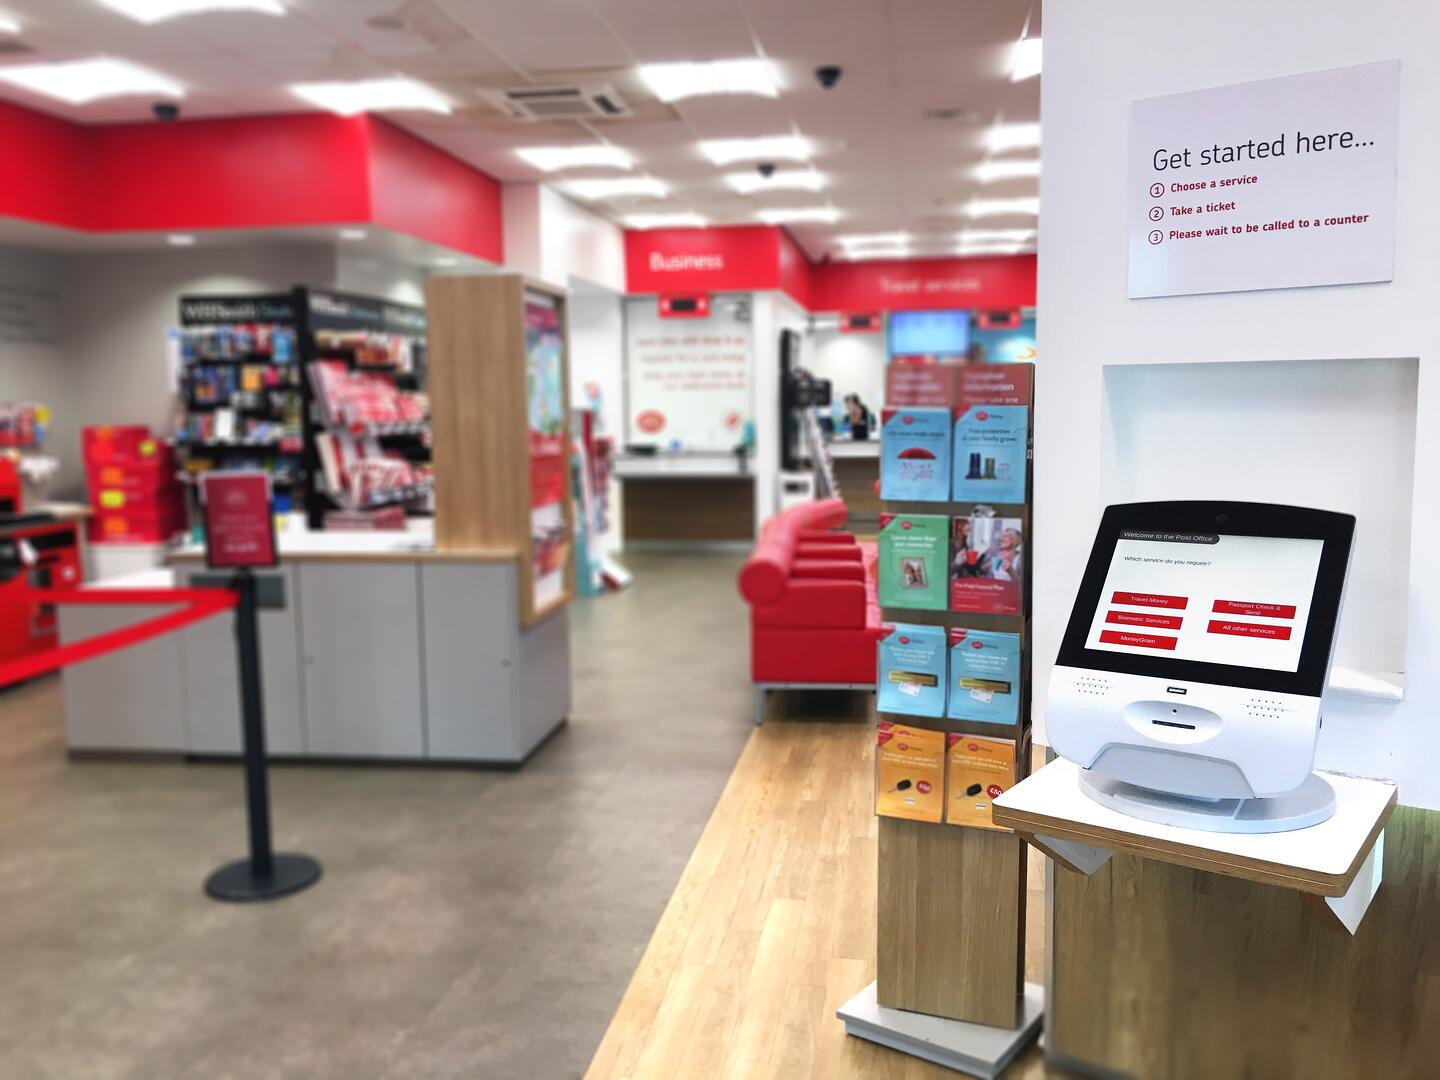 UK Qmatic Post Office Image 2